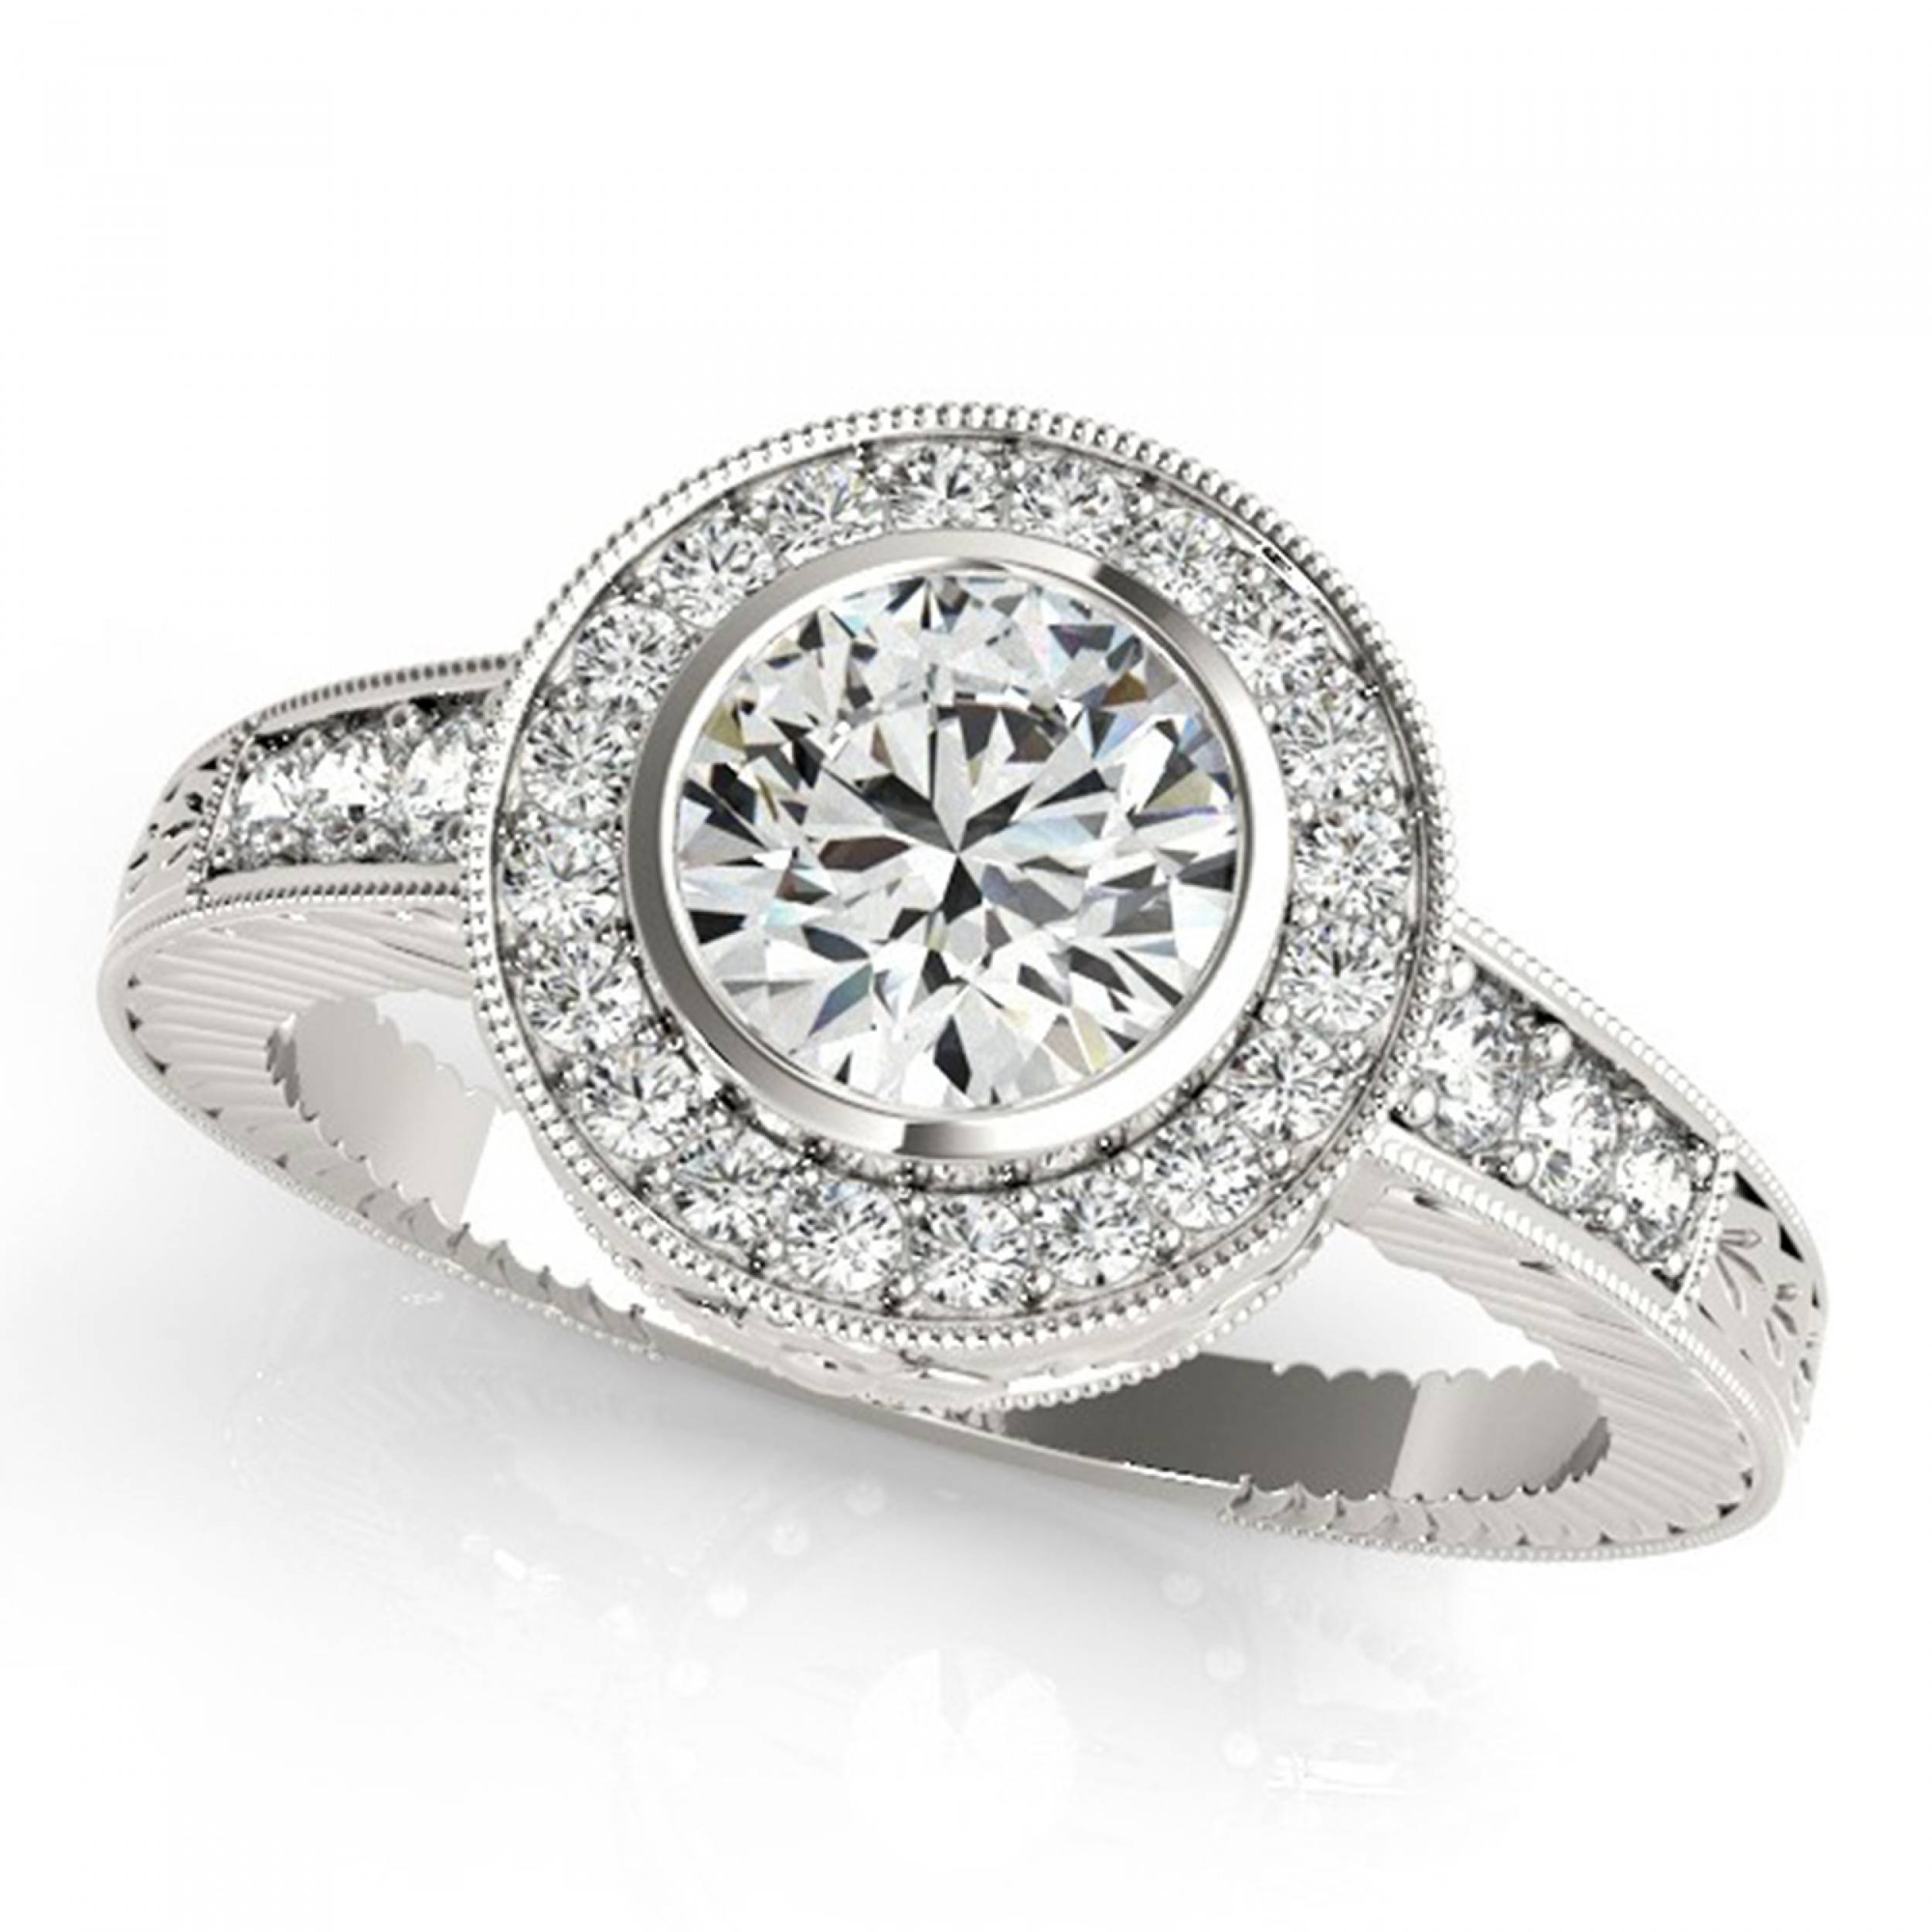 4 Carat Ornamental Etched Halo Bezel Diamond Sidestones Engagement Regarding Pear Bezel Engagement Rings (View 3 of 15)